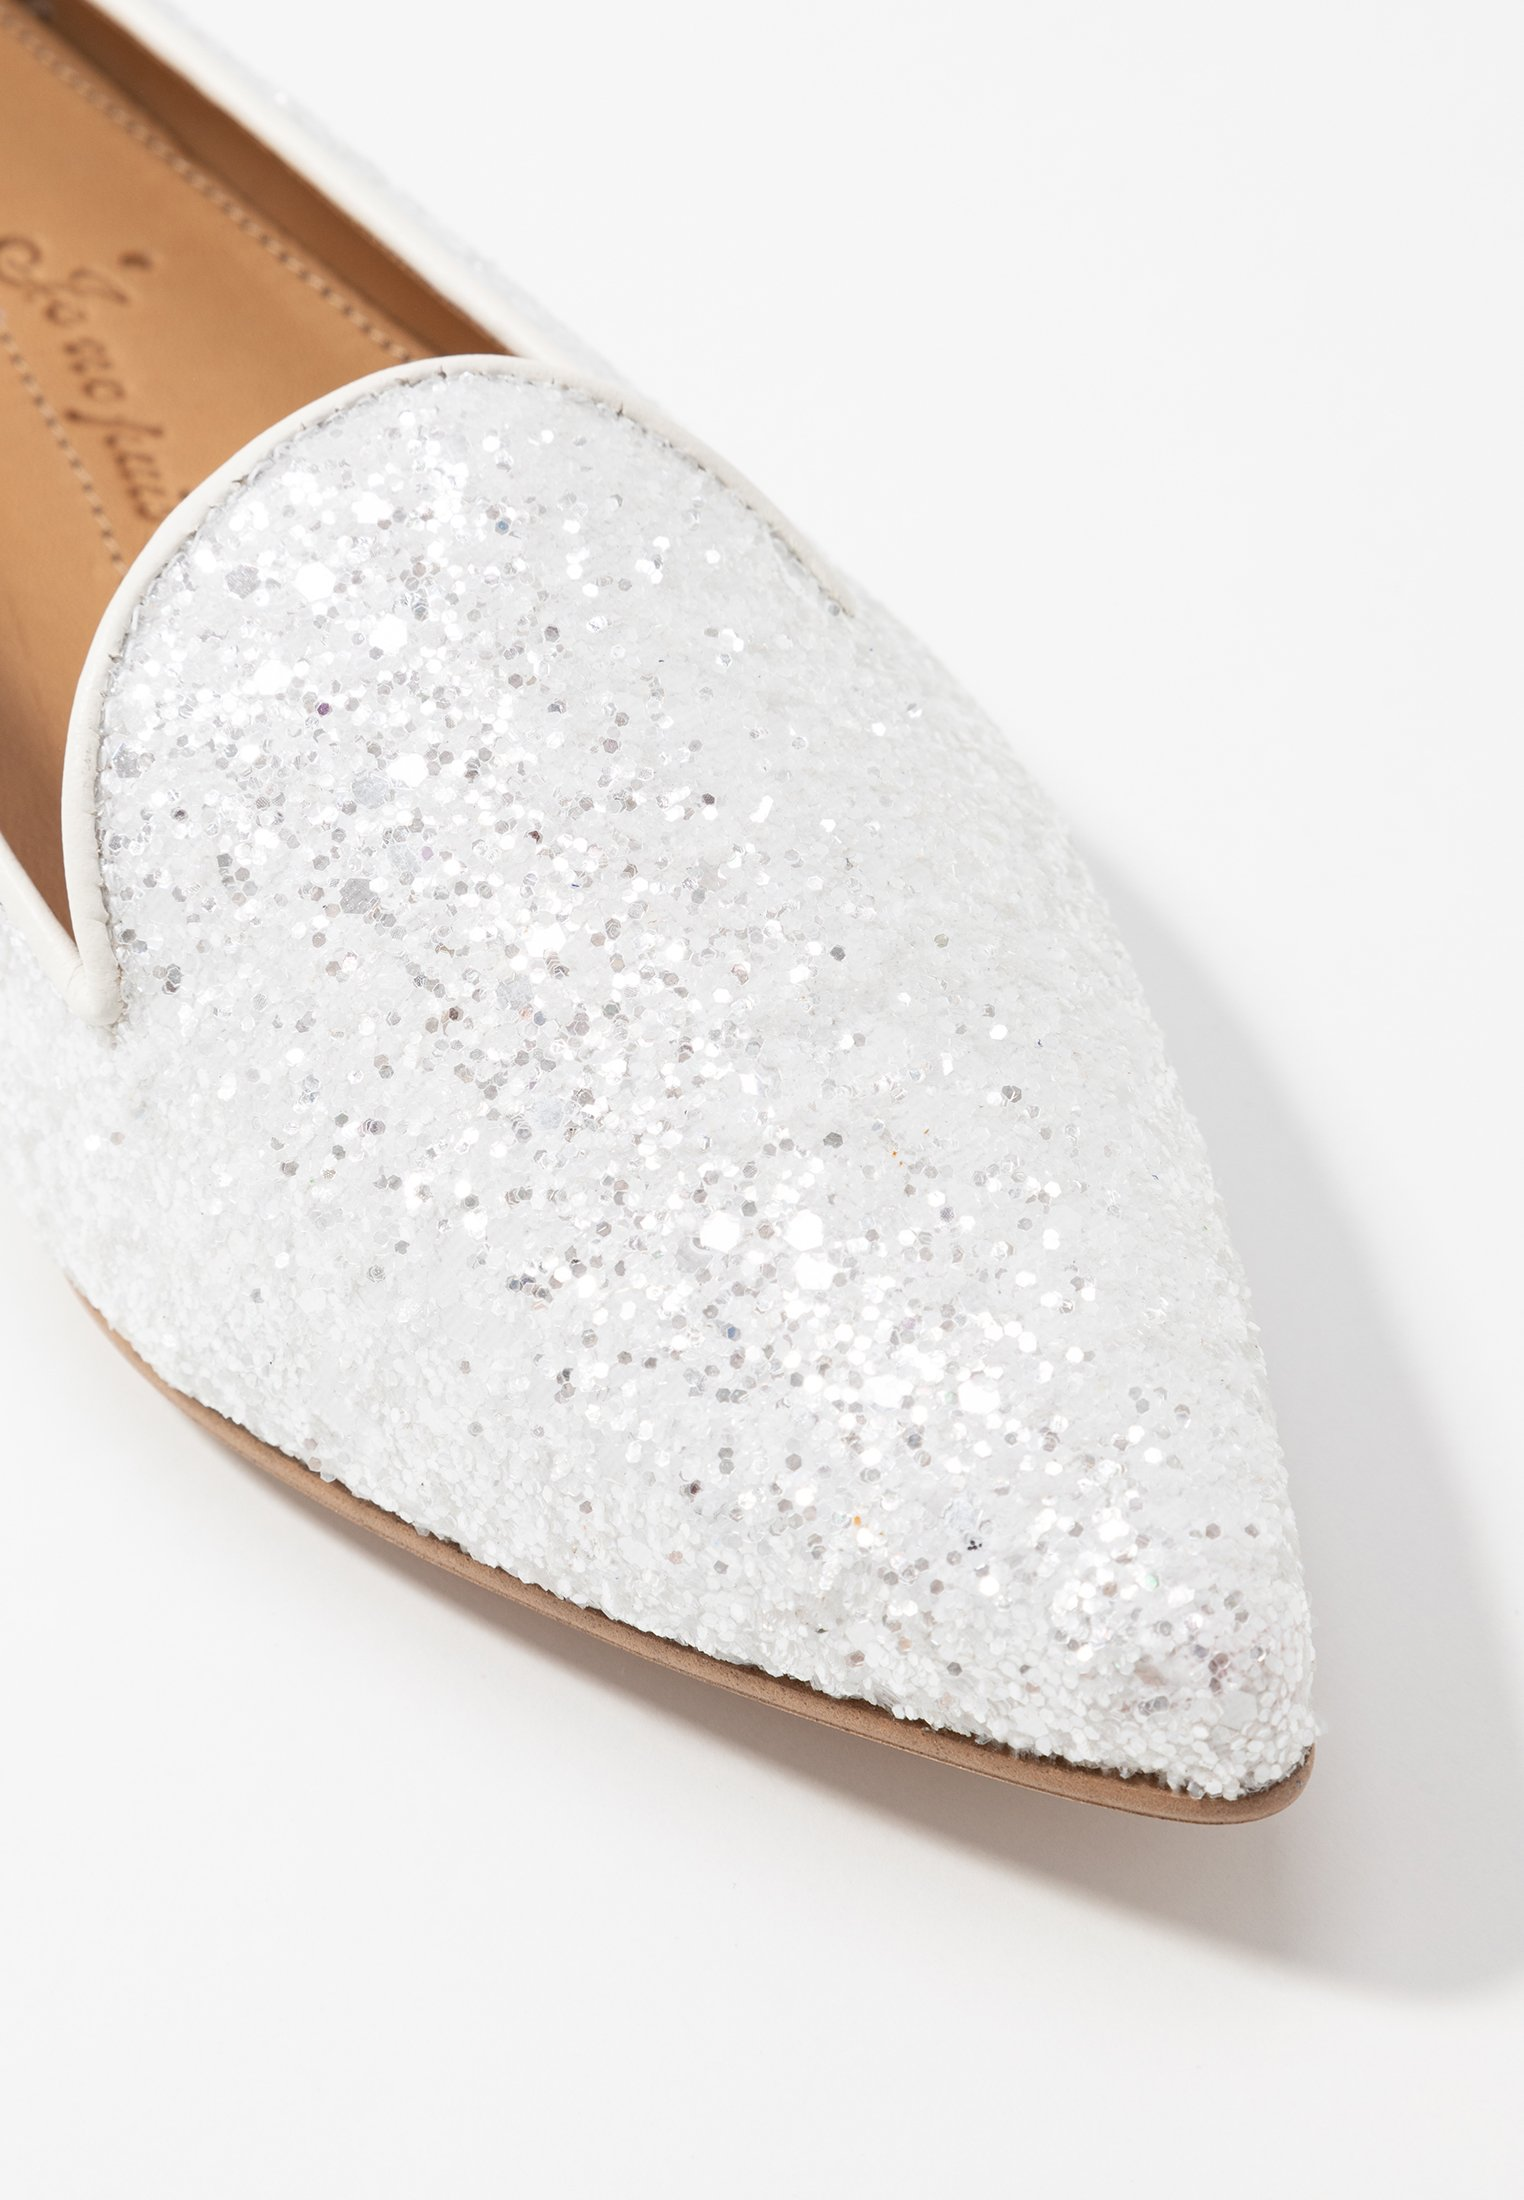 POINTYMocassins ANATOLE POINTYMocassins ANATOLE cream glitters Chatelles Chatelles zMVUpGqS